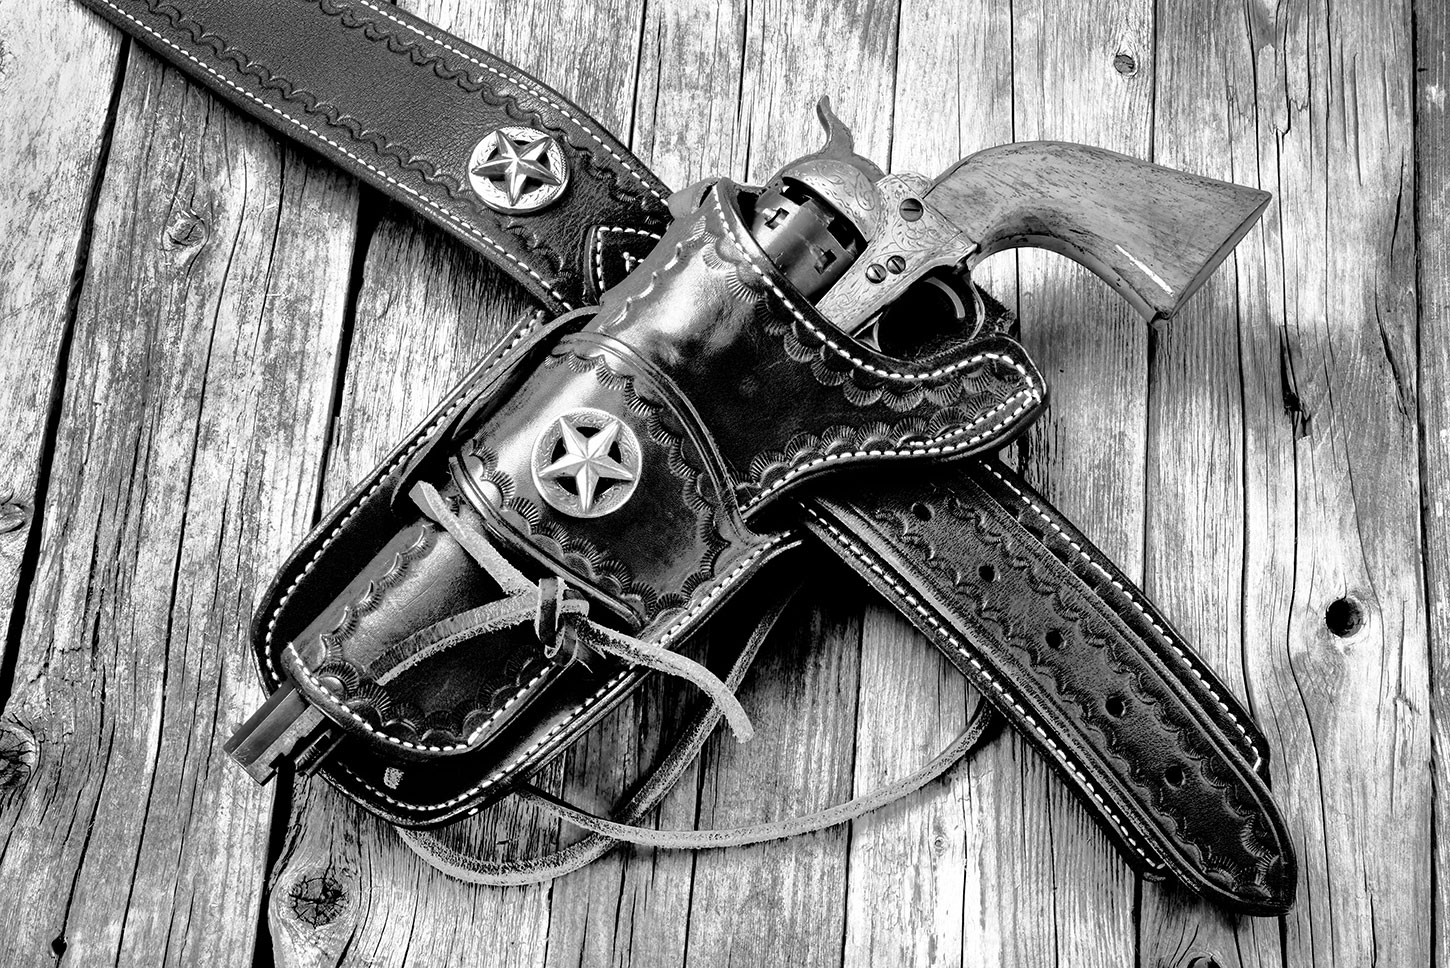 Old West revolver and holster